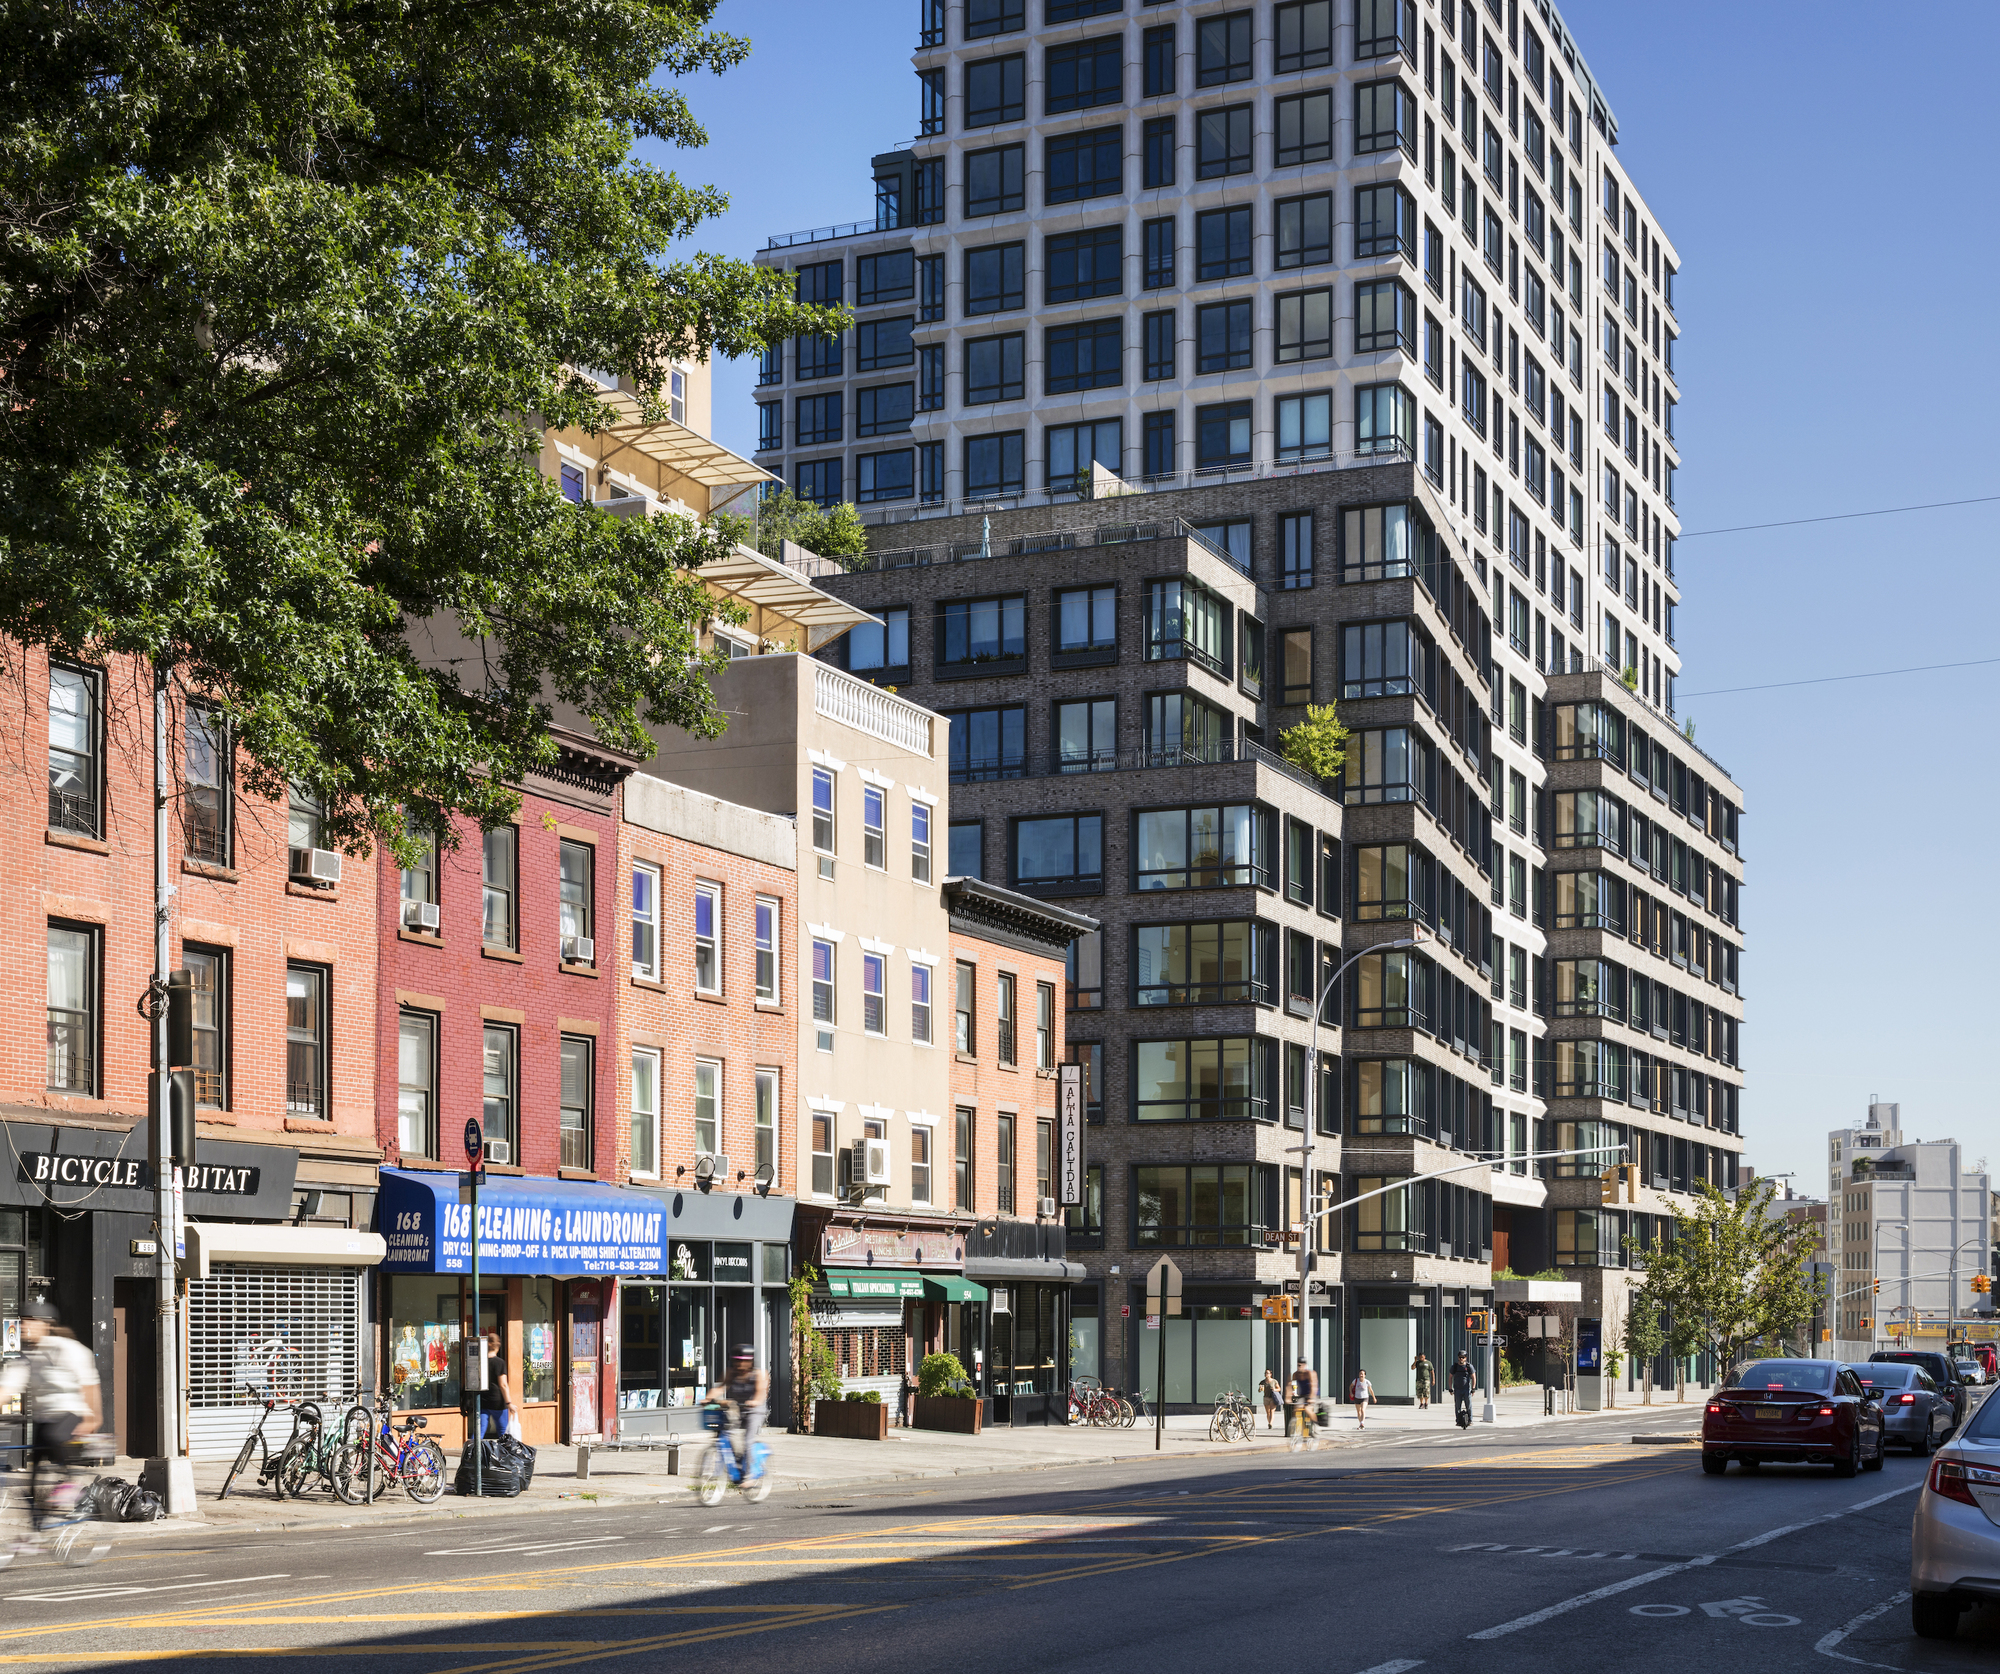 550 Vanderbilt Apartments / COOKFOX Architects